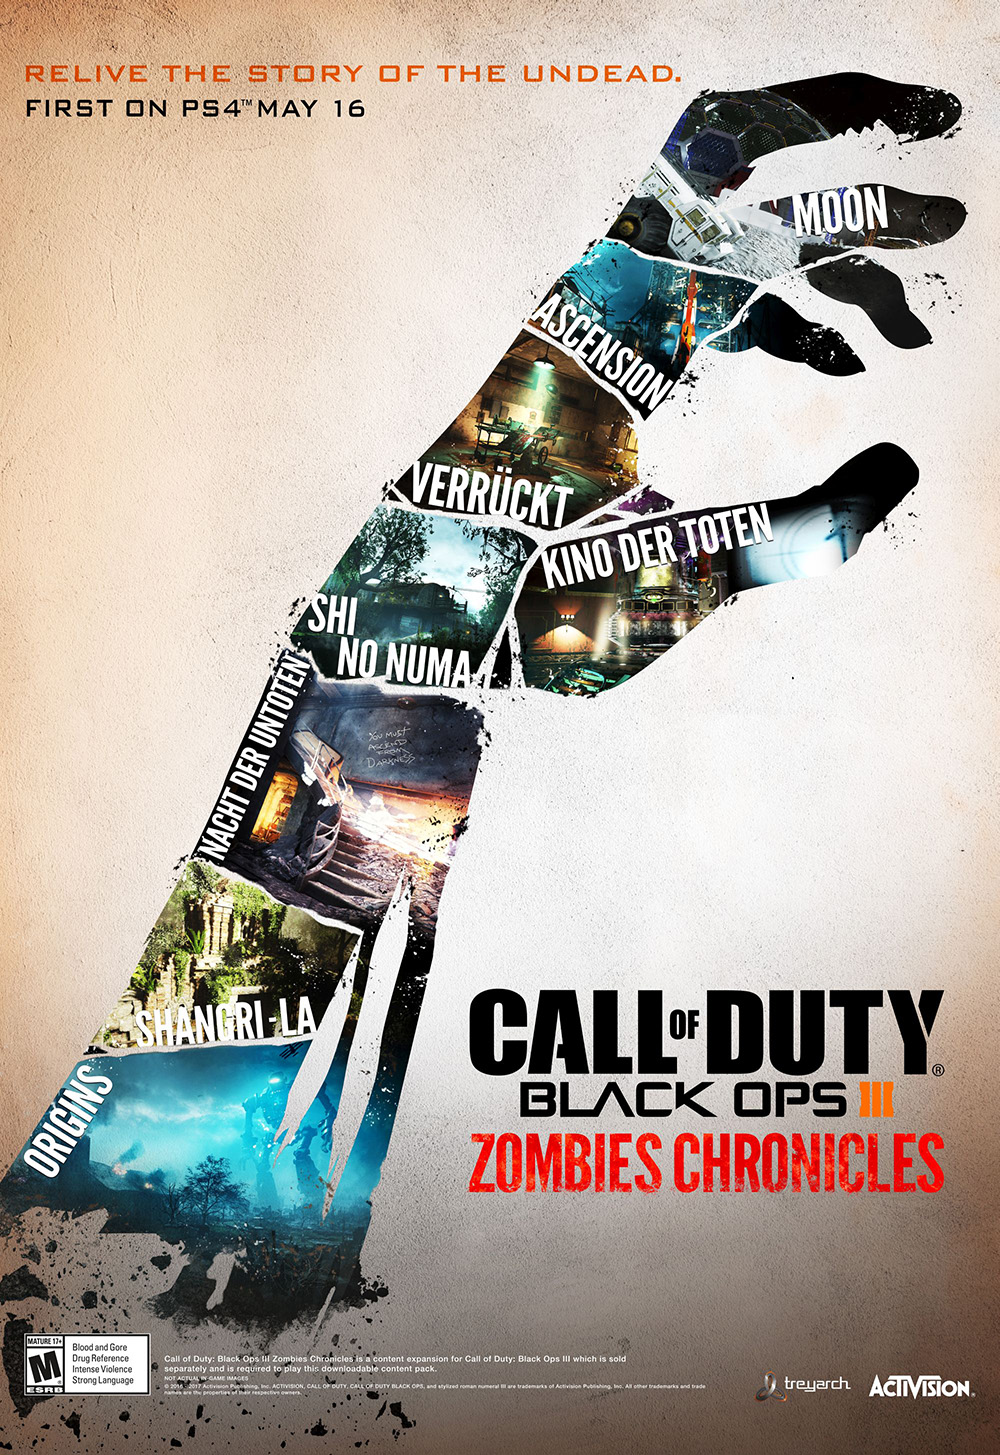 CoD_BOIII_Zombies_Chronicles